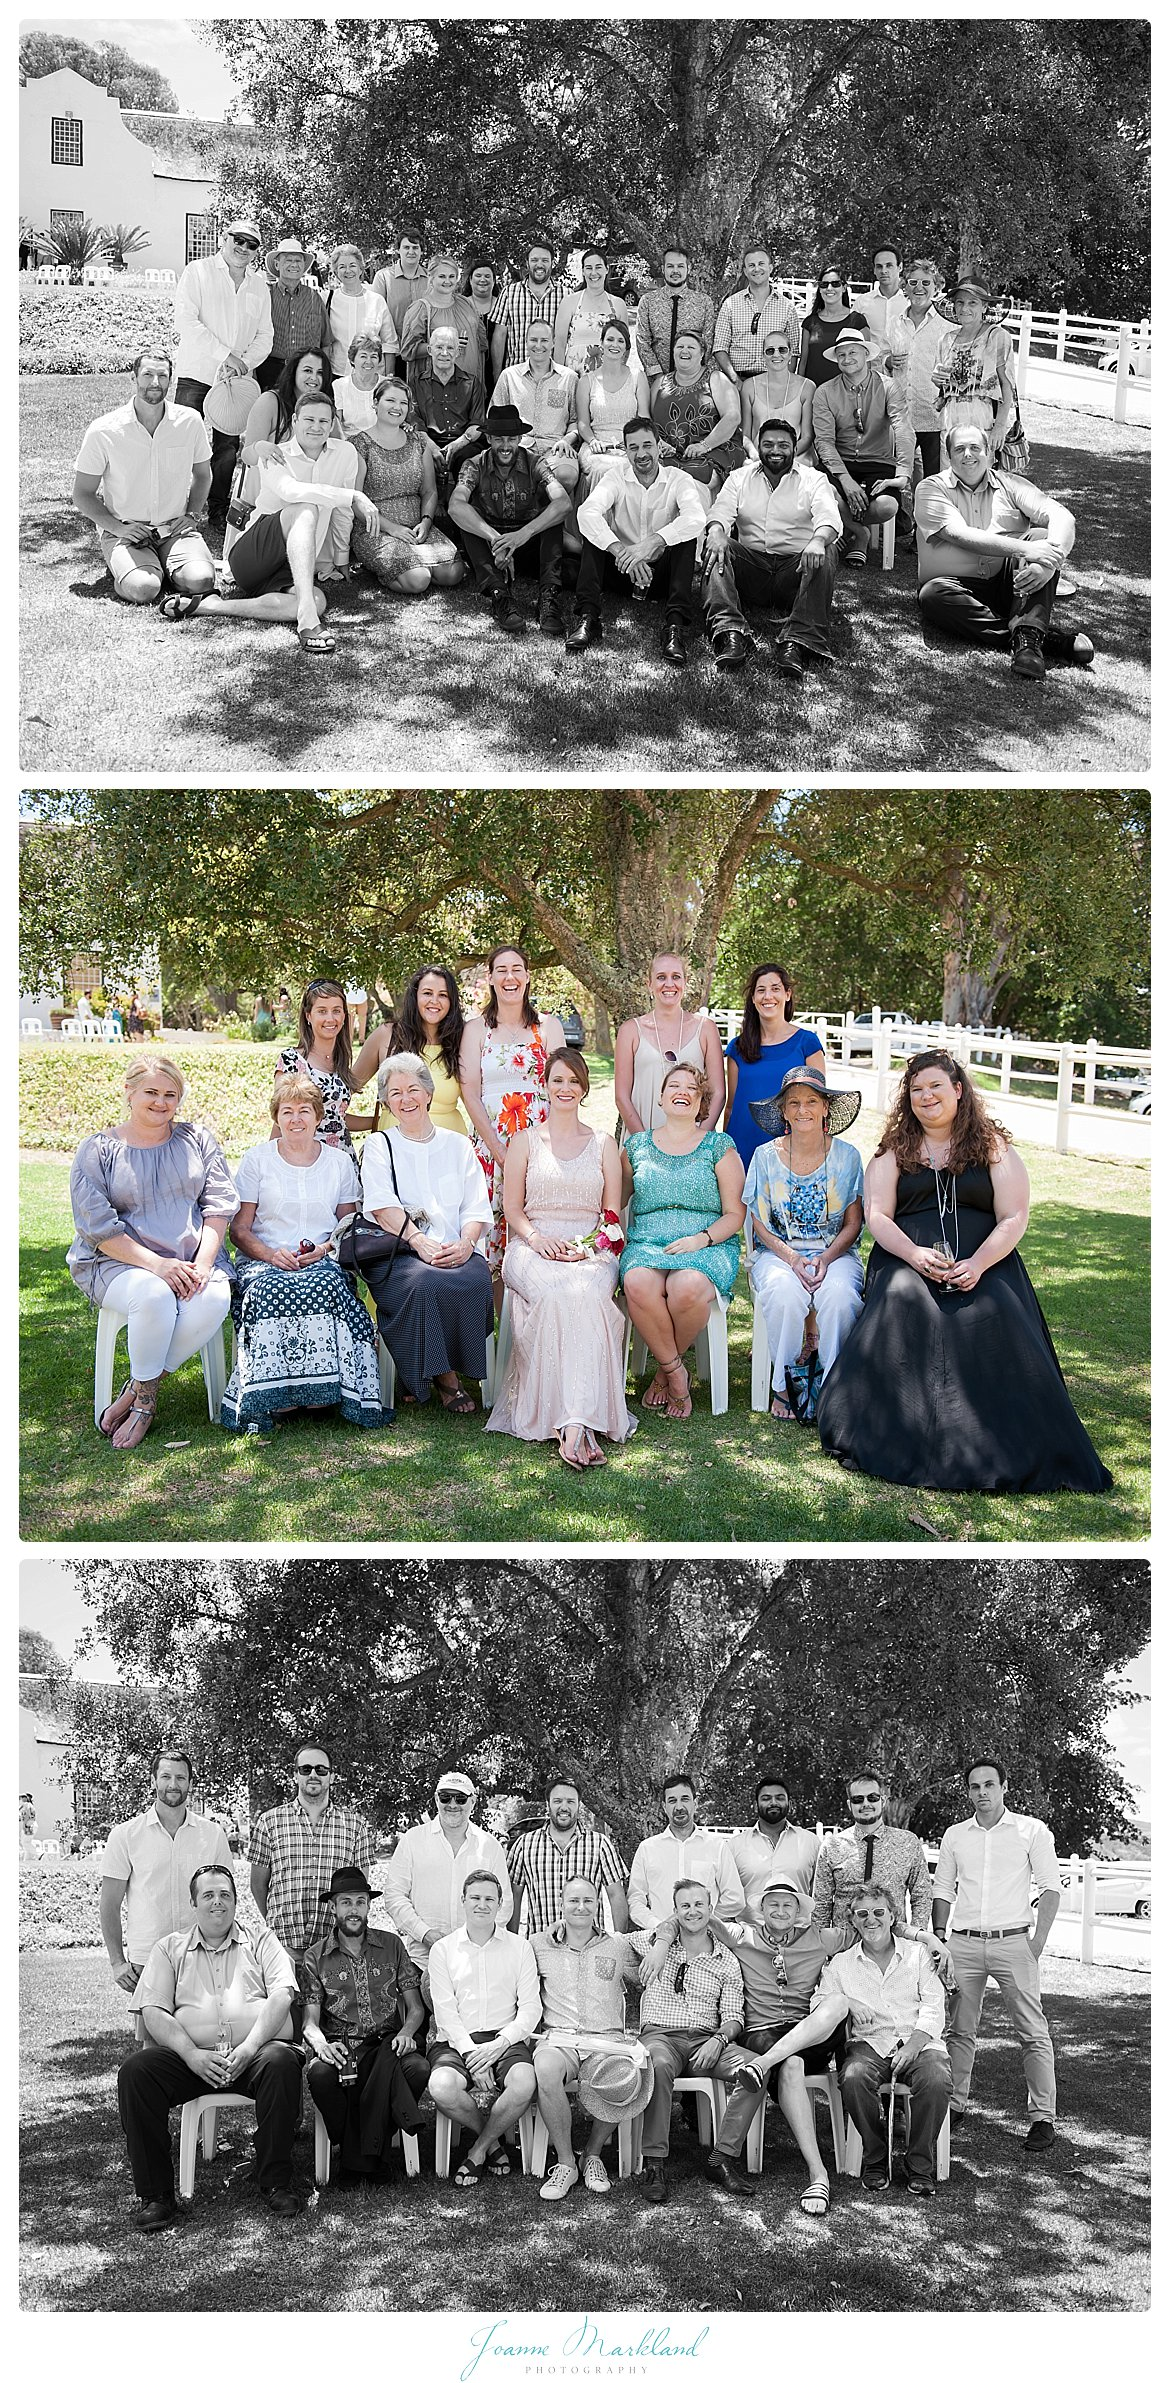 Grootepost-wedding-photography-joanne-markland-019